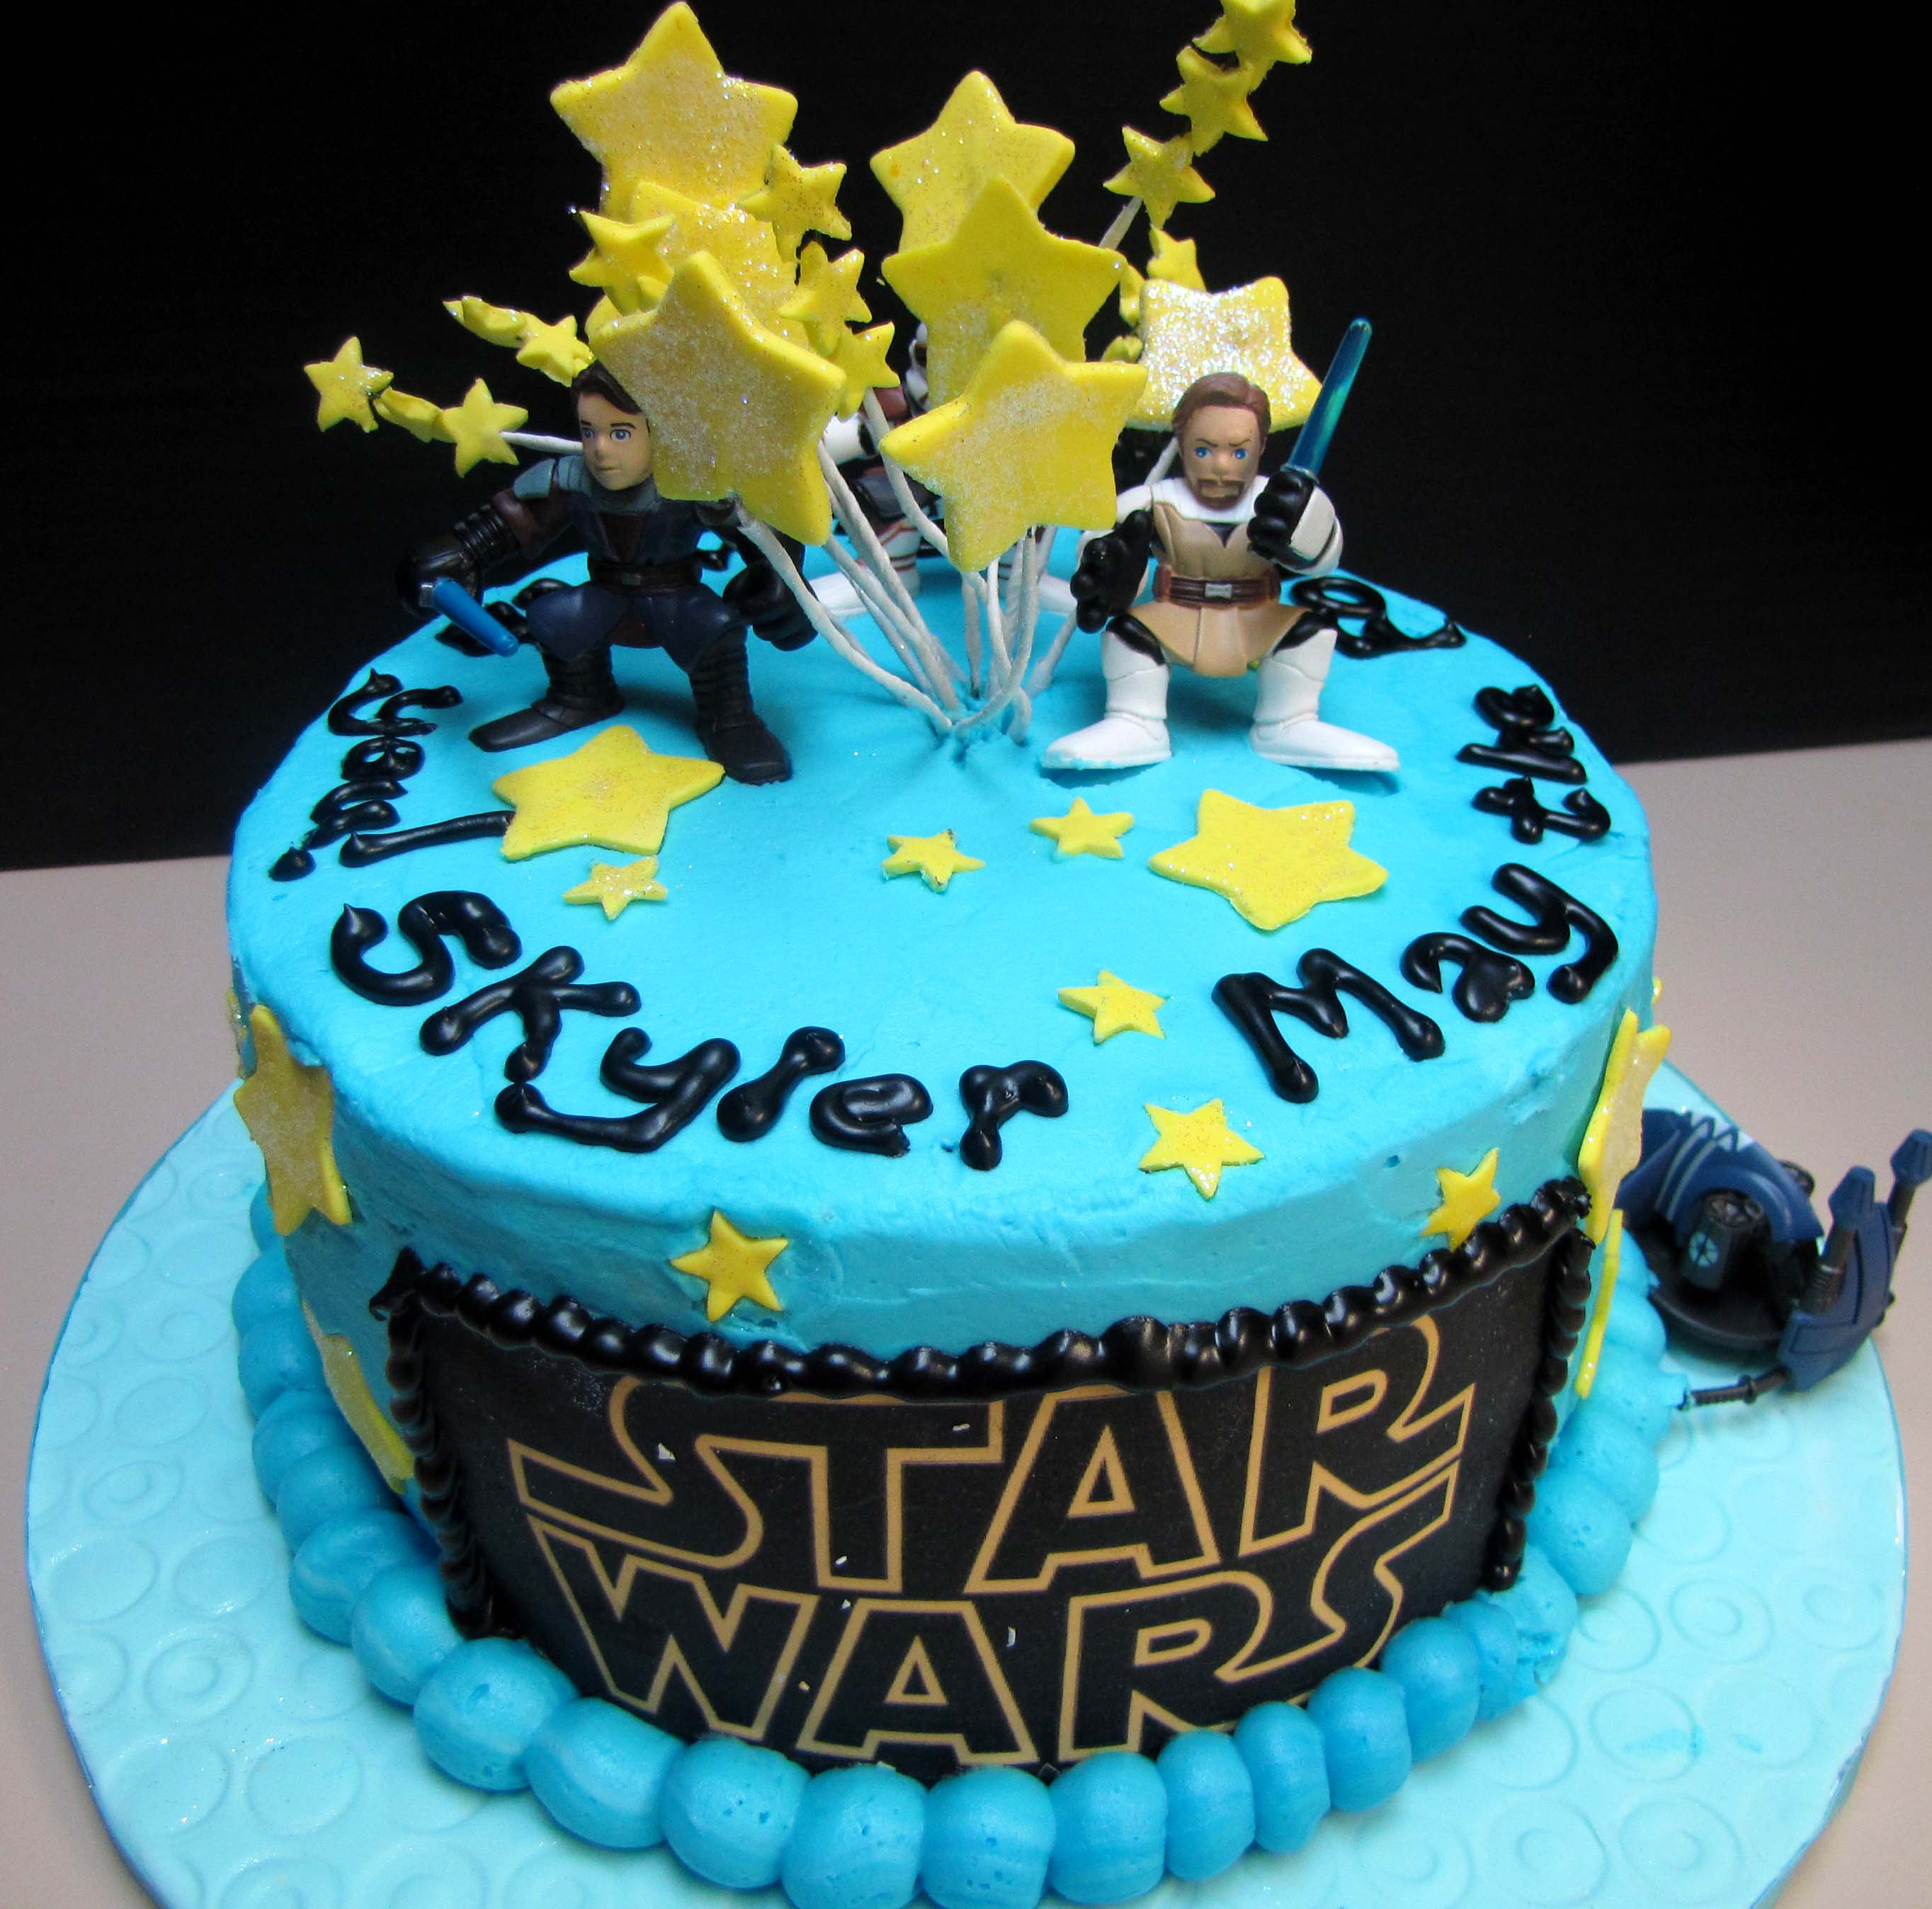 star wars cakes decoration ideas little birthday cakes. Black Bedroom Furniture Sets. Home Design Ideas